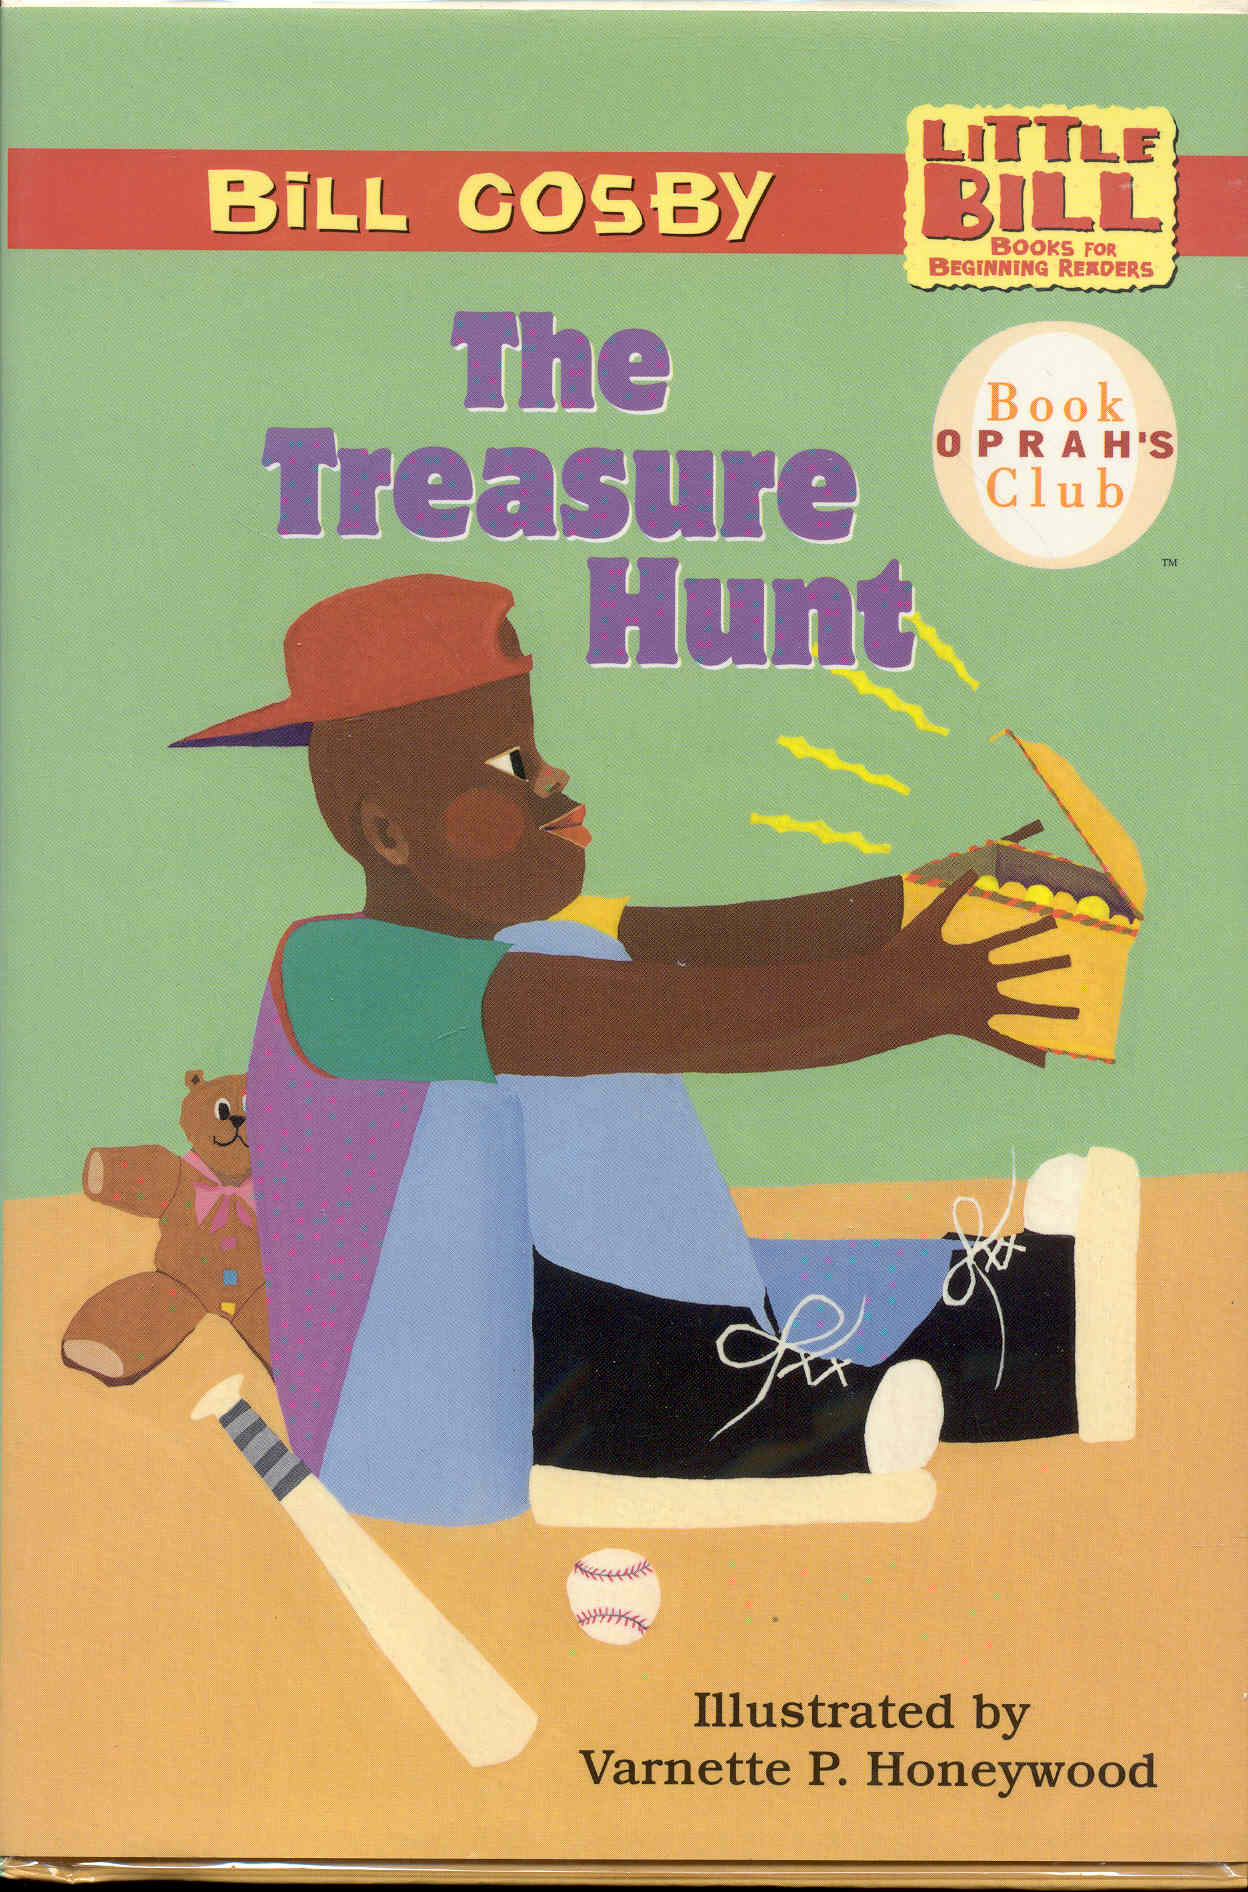 Image for The Treasure Hunt: Little Bill Books for Beginning Readers